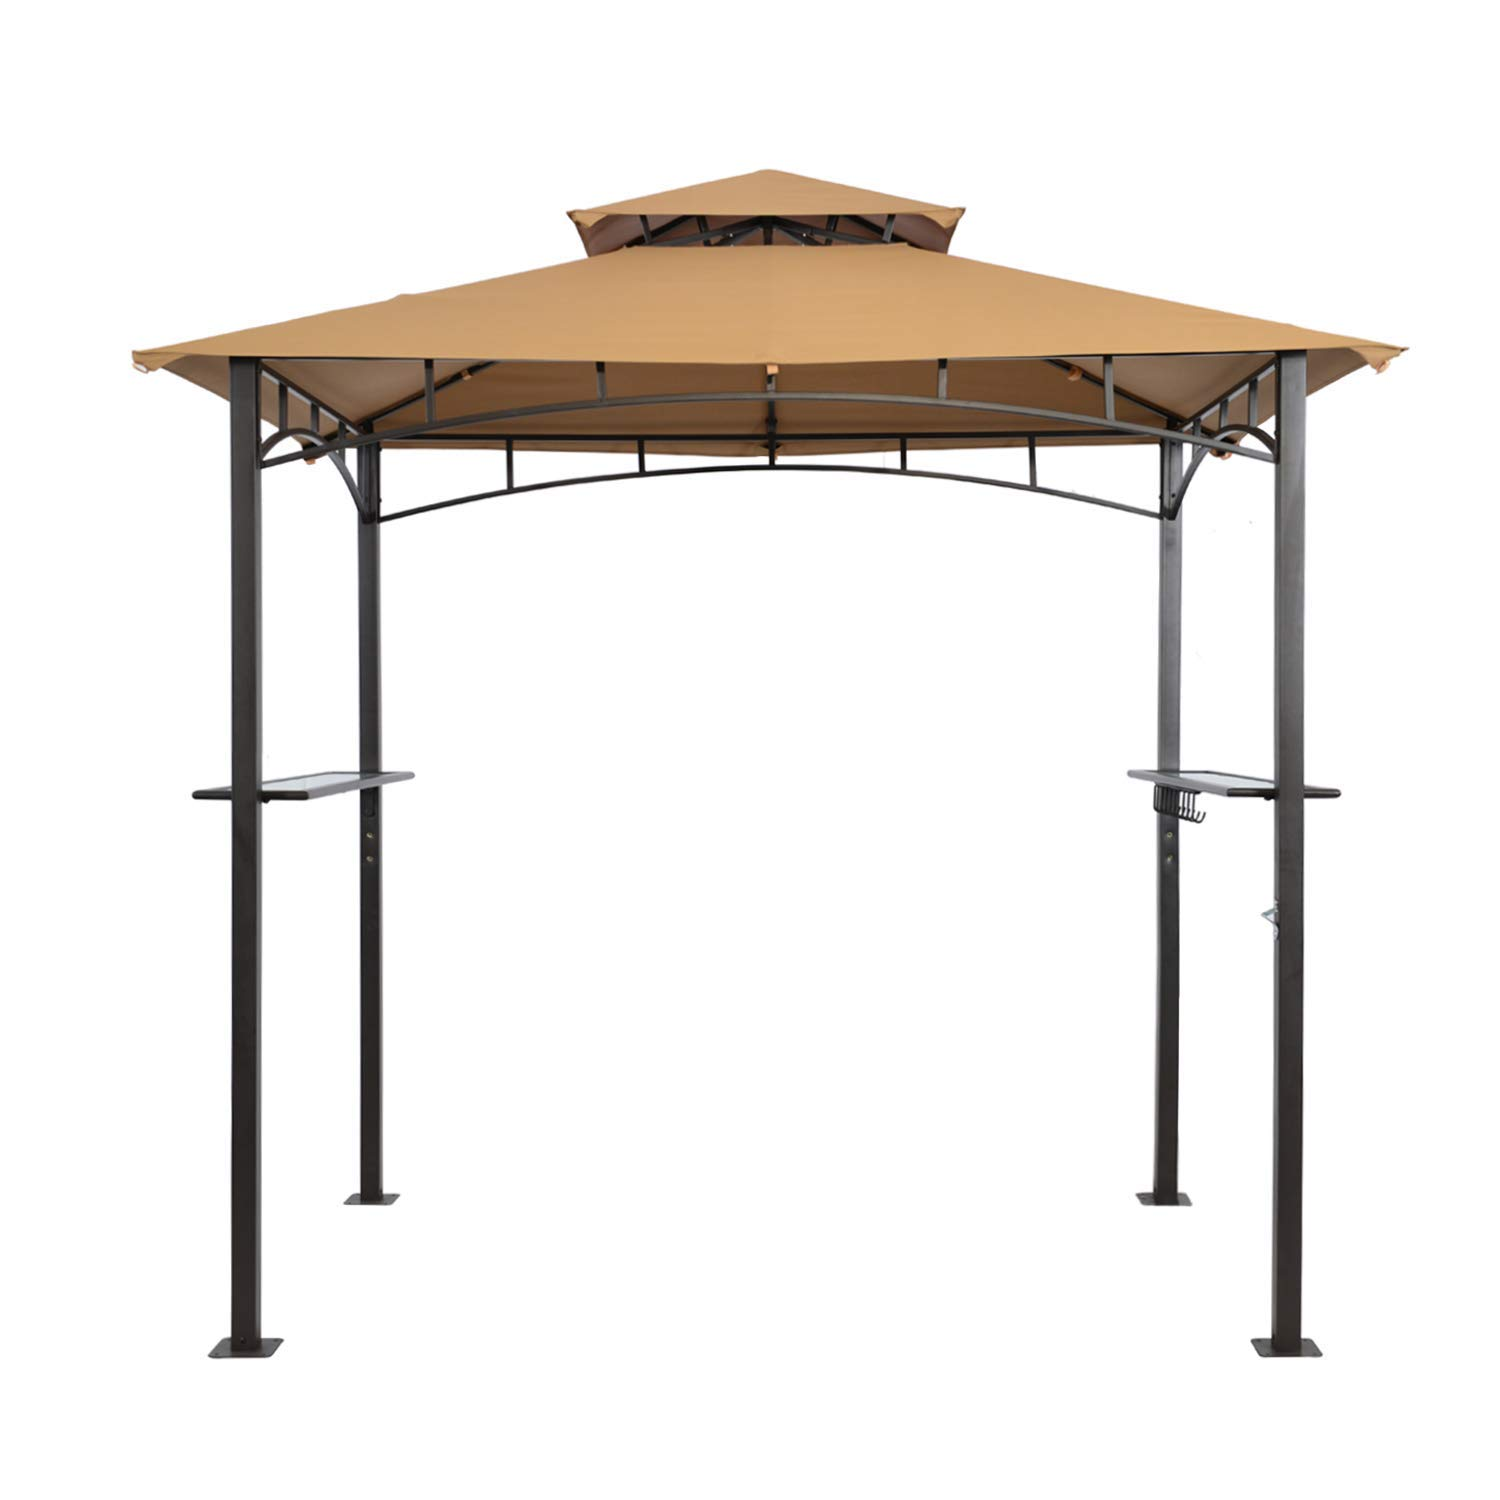 suna outdoor Grill Gazebo 8 x 5 Ft, Outdoor Patio Barbecue Grill Gazebo BBQ Shelter Tent, Double Tier Soft Top Canopy and Steel Frame with Bar Counters, Beige